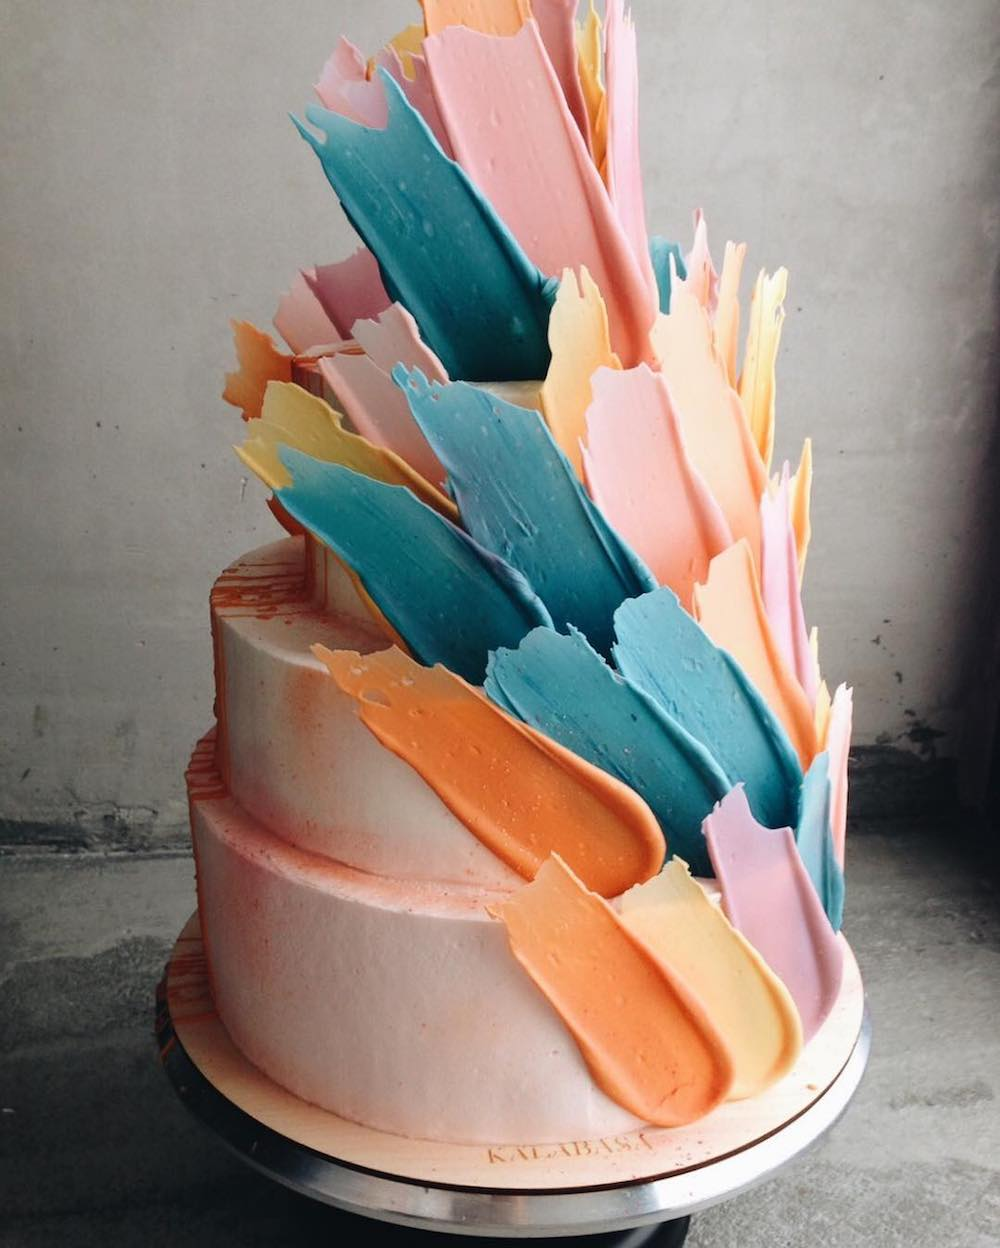 Abstract Cakes Topped With Chocolate Brushstrokes  Colossal